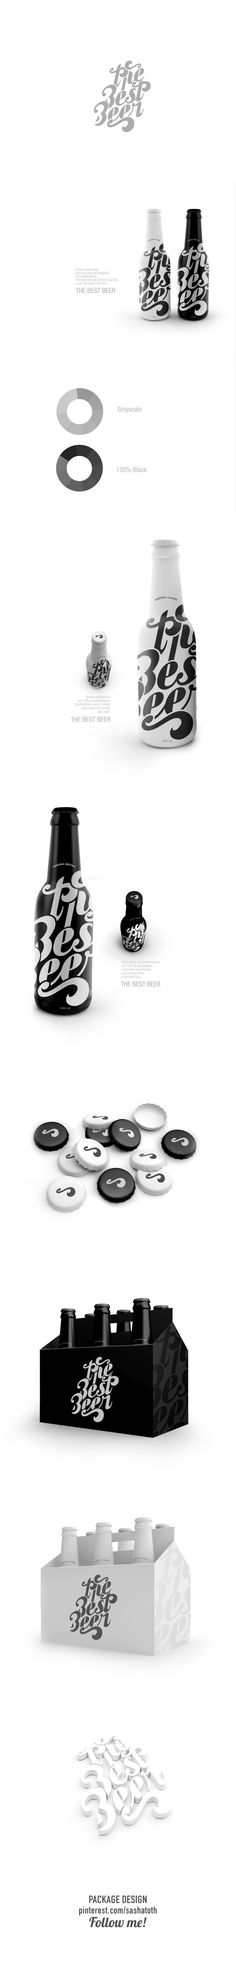 The Best Beer Lettering and Packaging (concept) by Renan Vizzotto